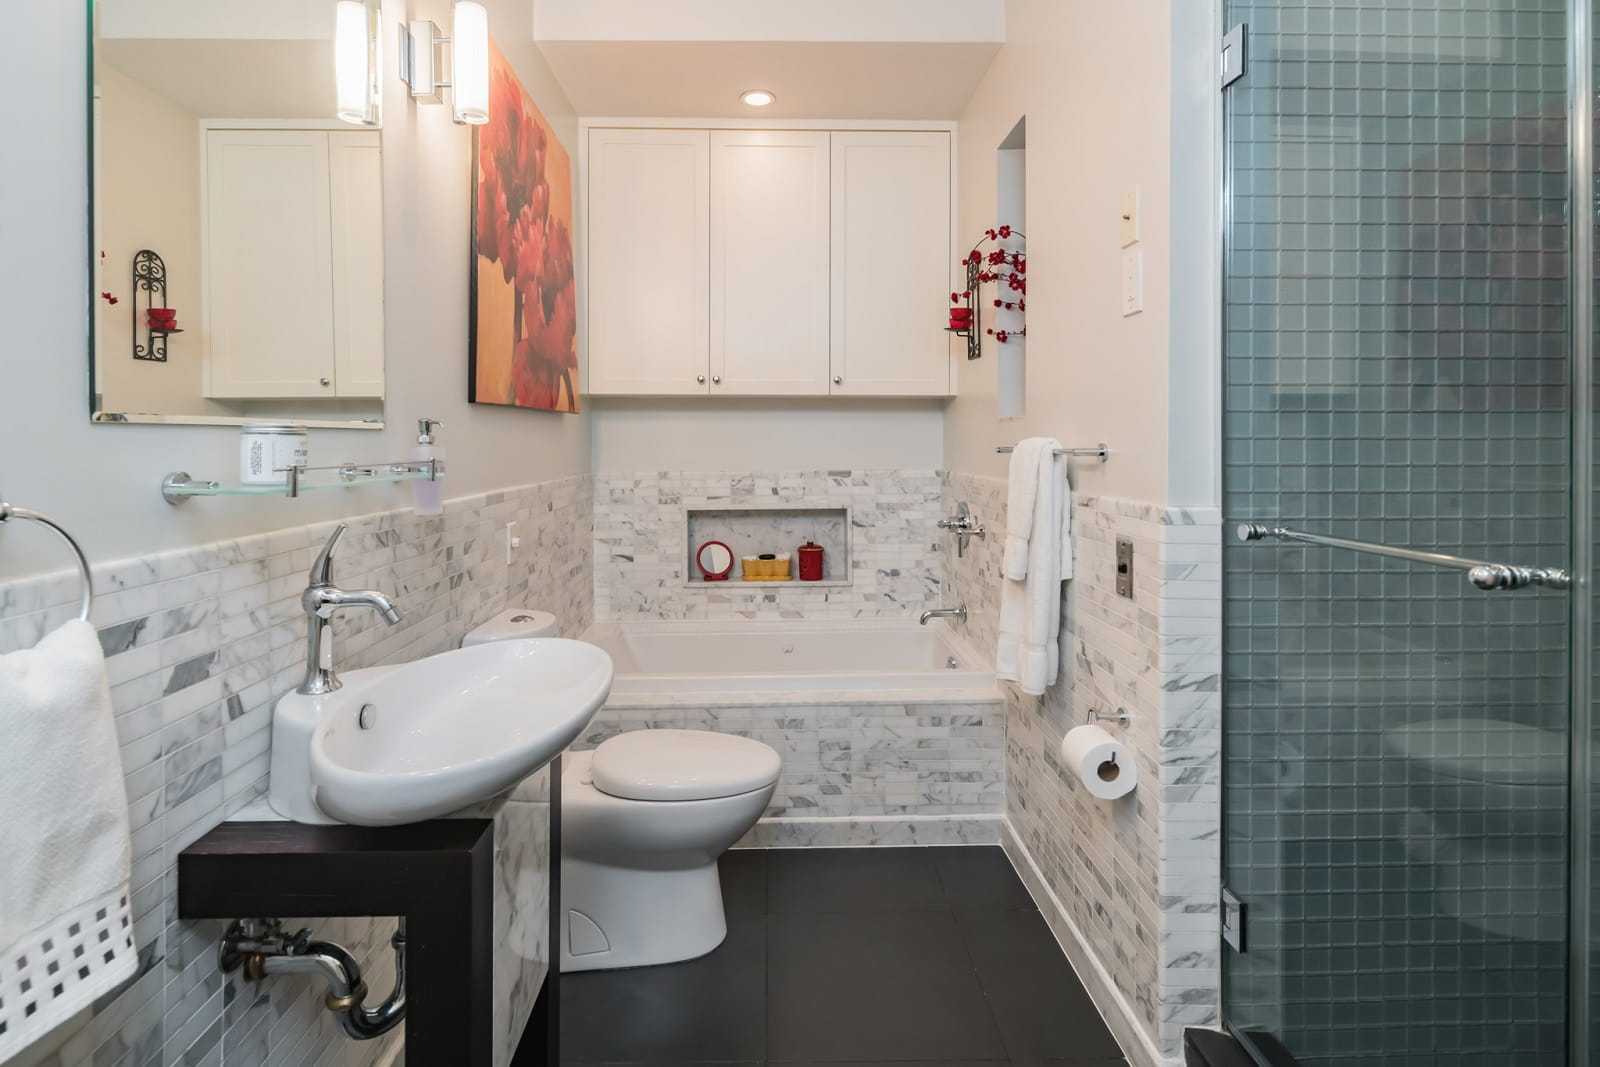 Real Estate Photography in Newyork City - NY - USA - Bathroom View